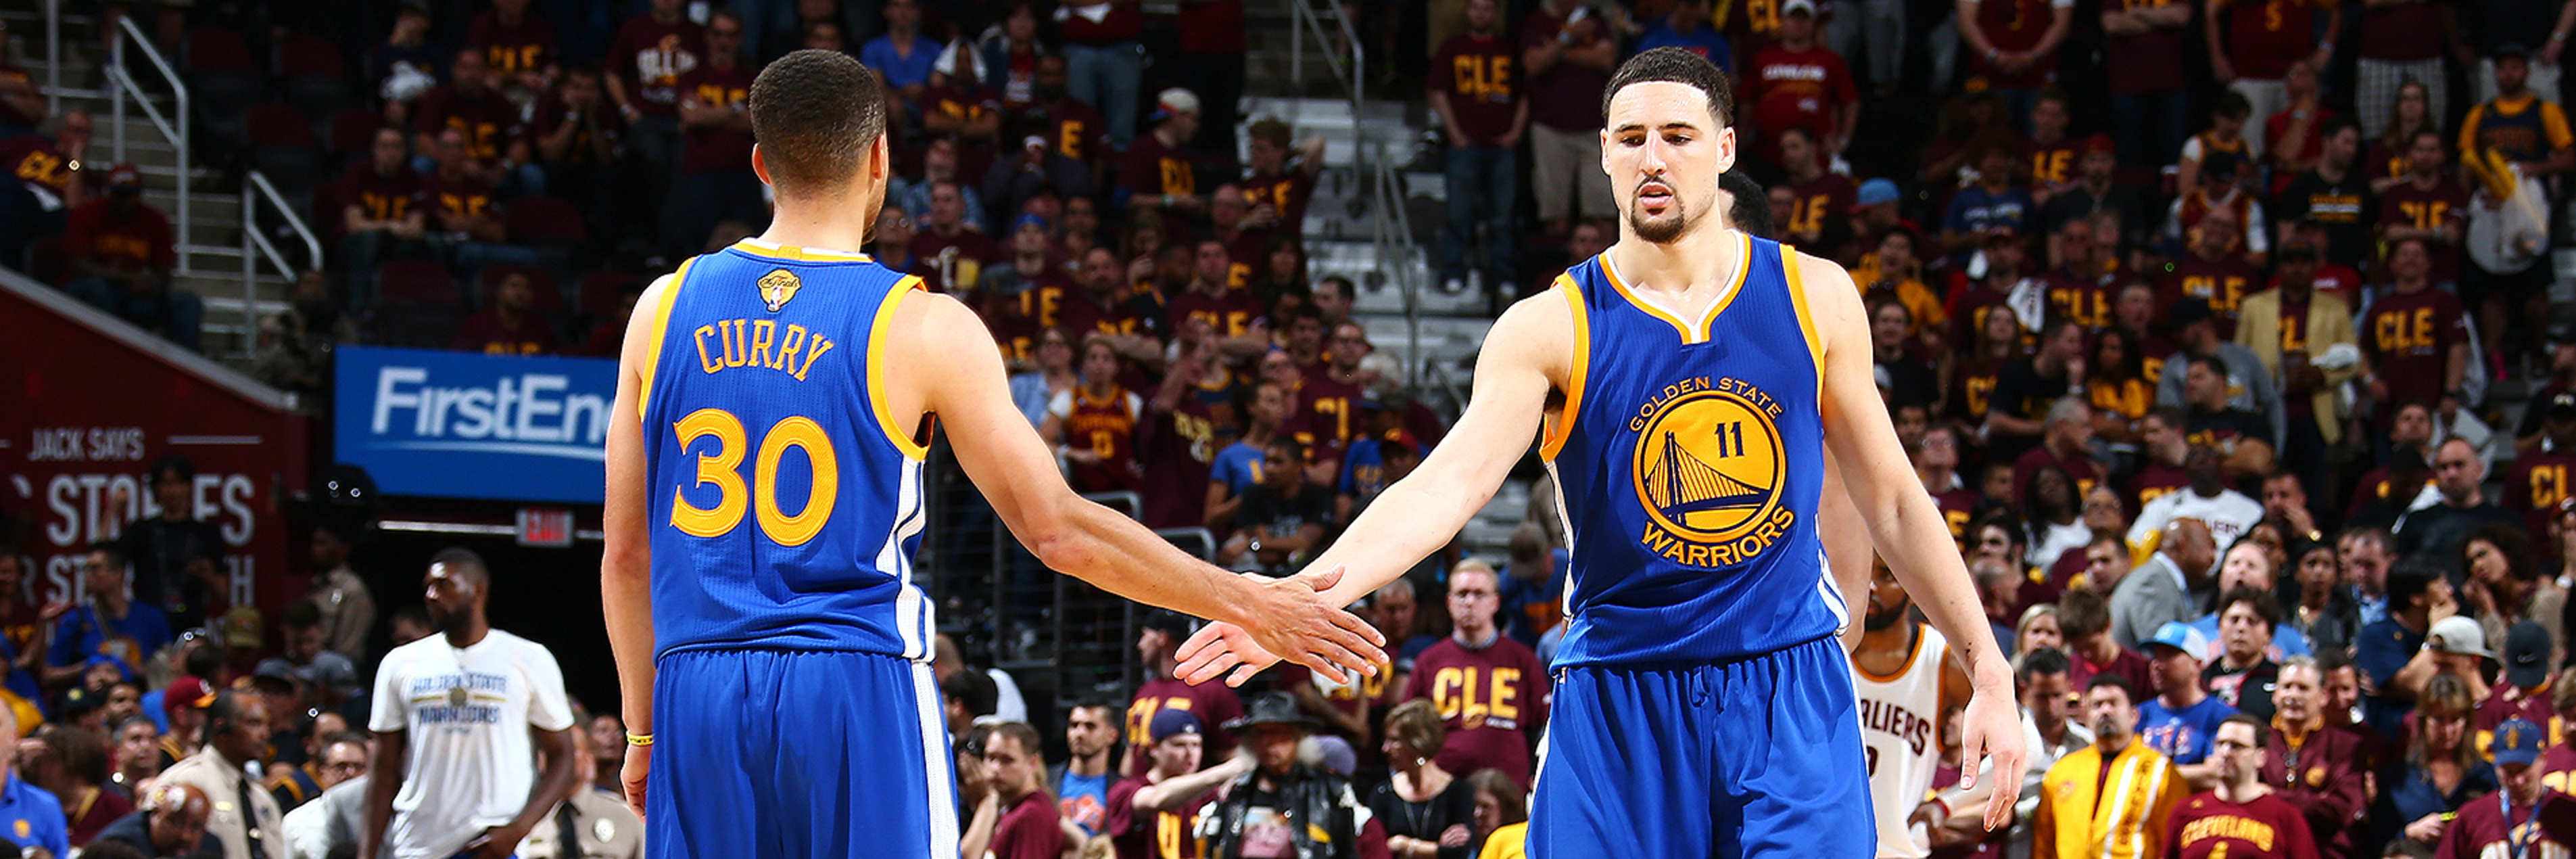 Splash Brothers Lead Way to Game 4 Victory | Golden State Warriors